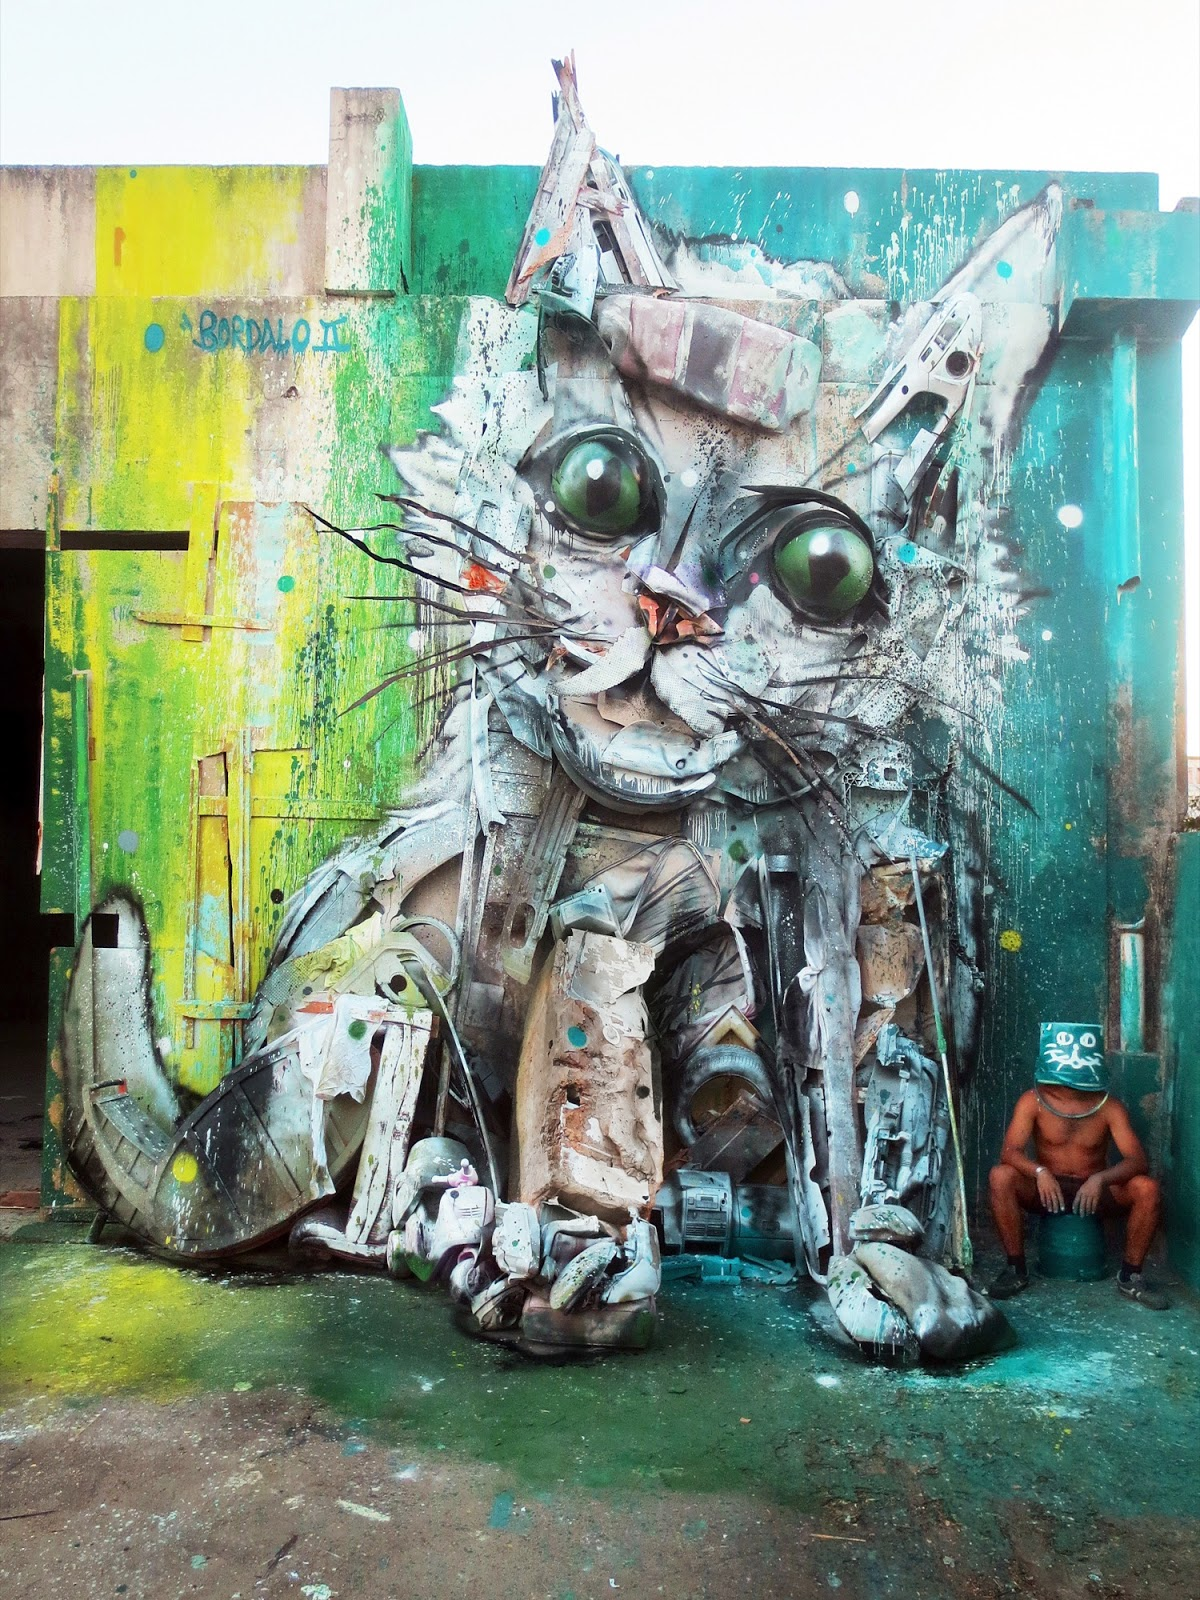 trash cat a new street installation by bordalo ii in portugal streetartnews streetartnews. Black Bedroom Furniture Sets. Home Design Ideas